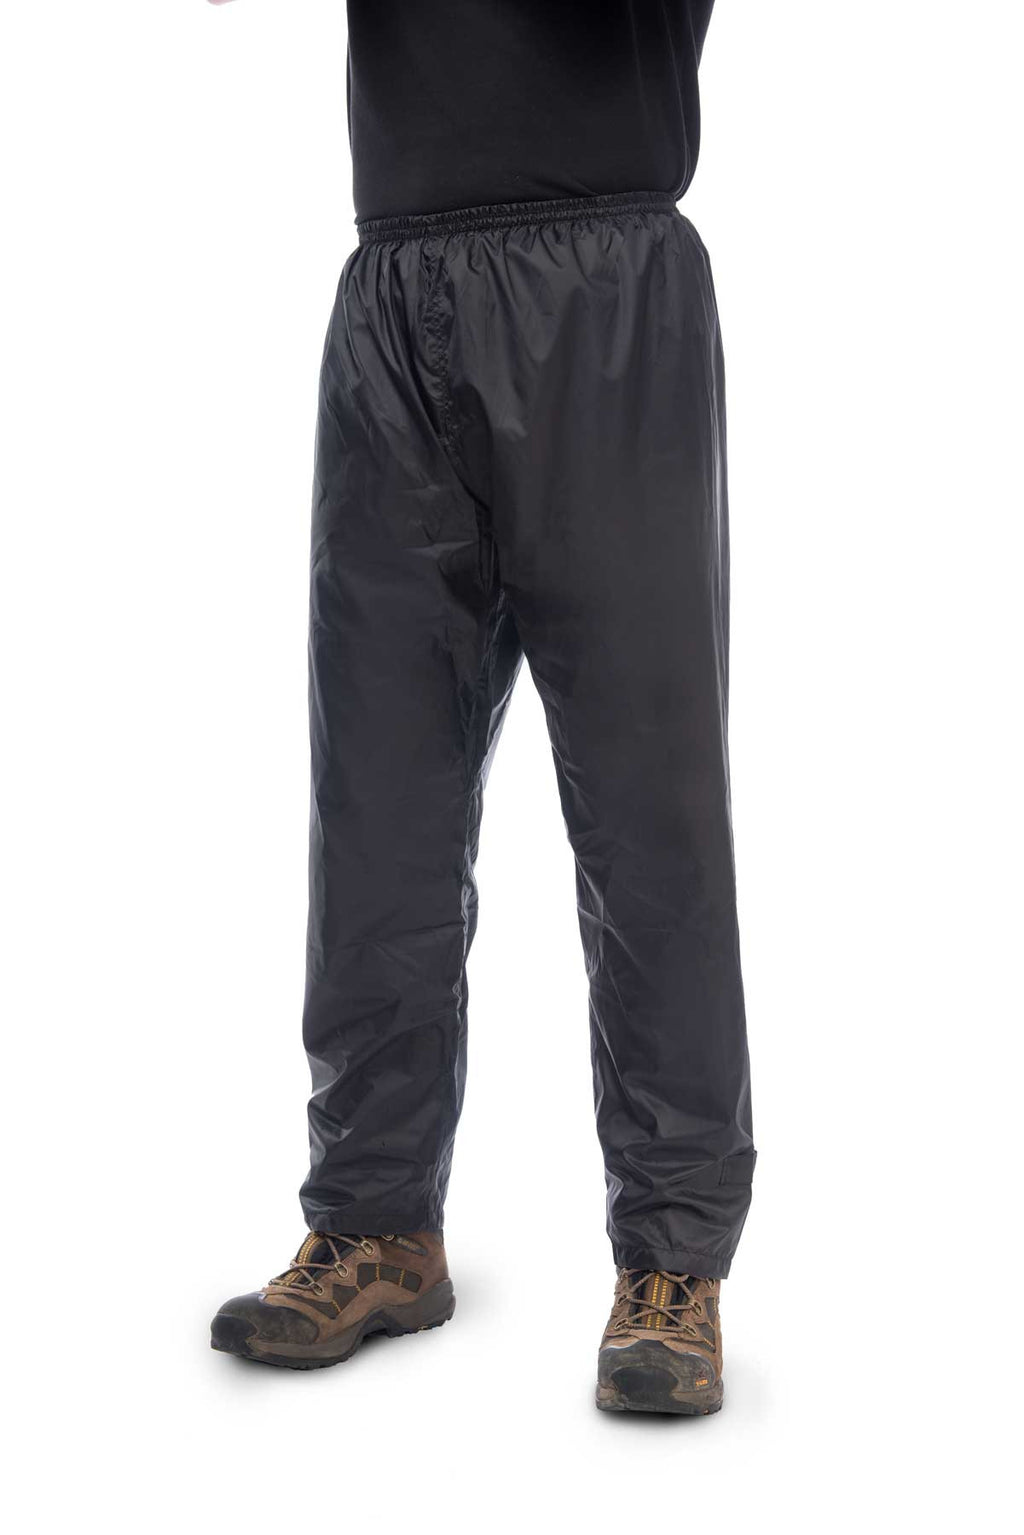 Mac In a Sac- Waterproof Trousers with Taped Seams